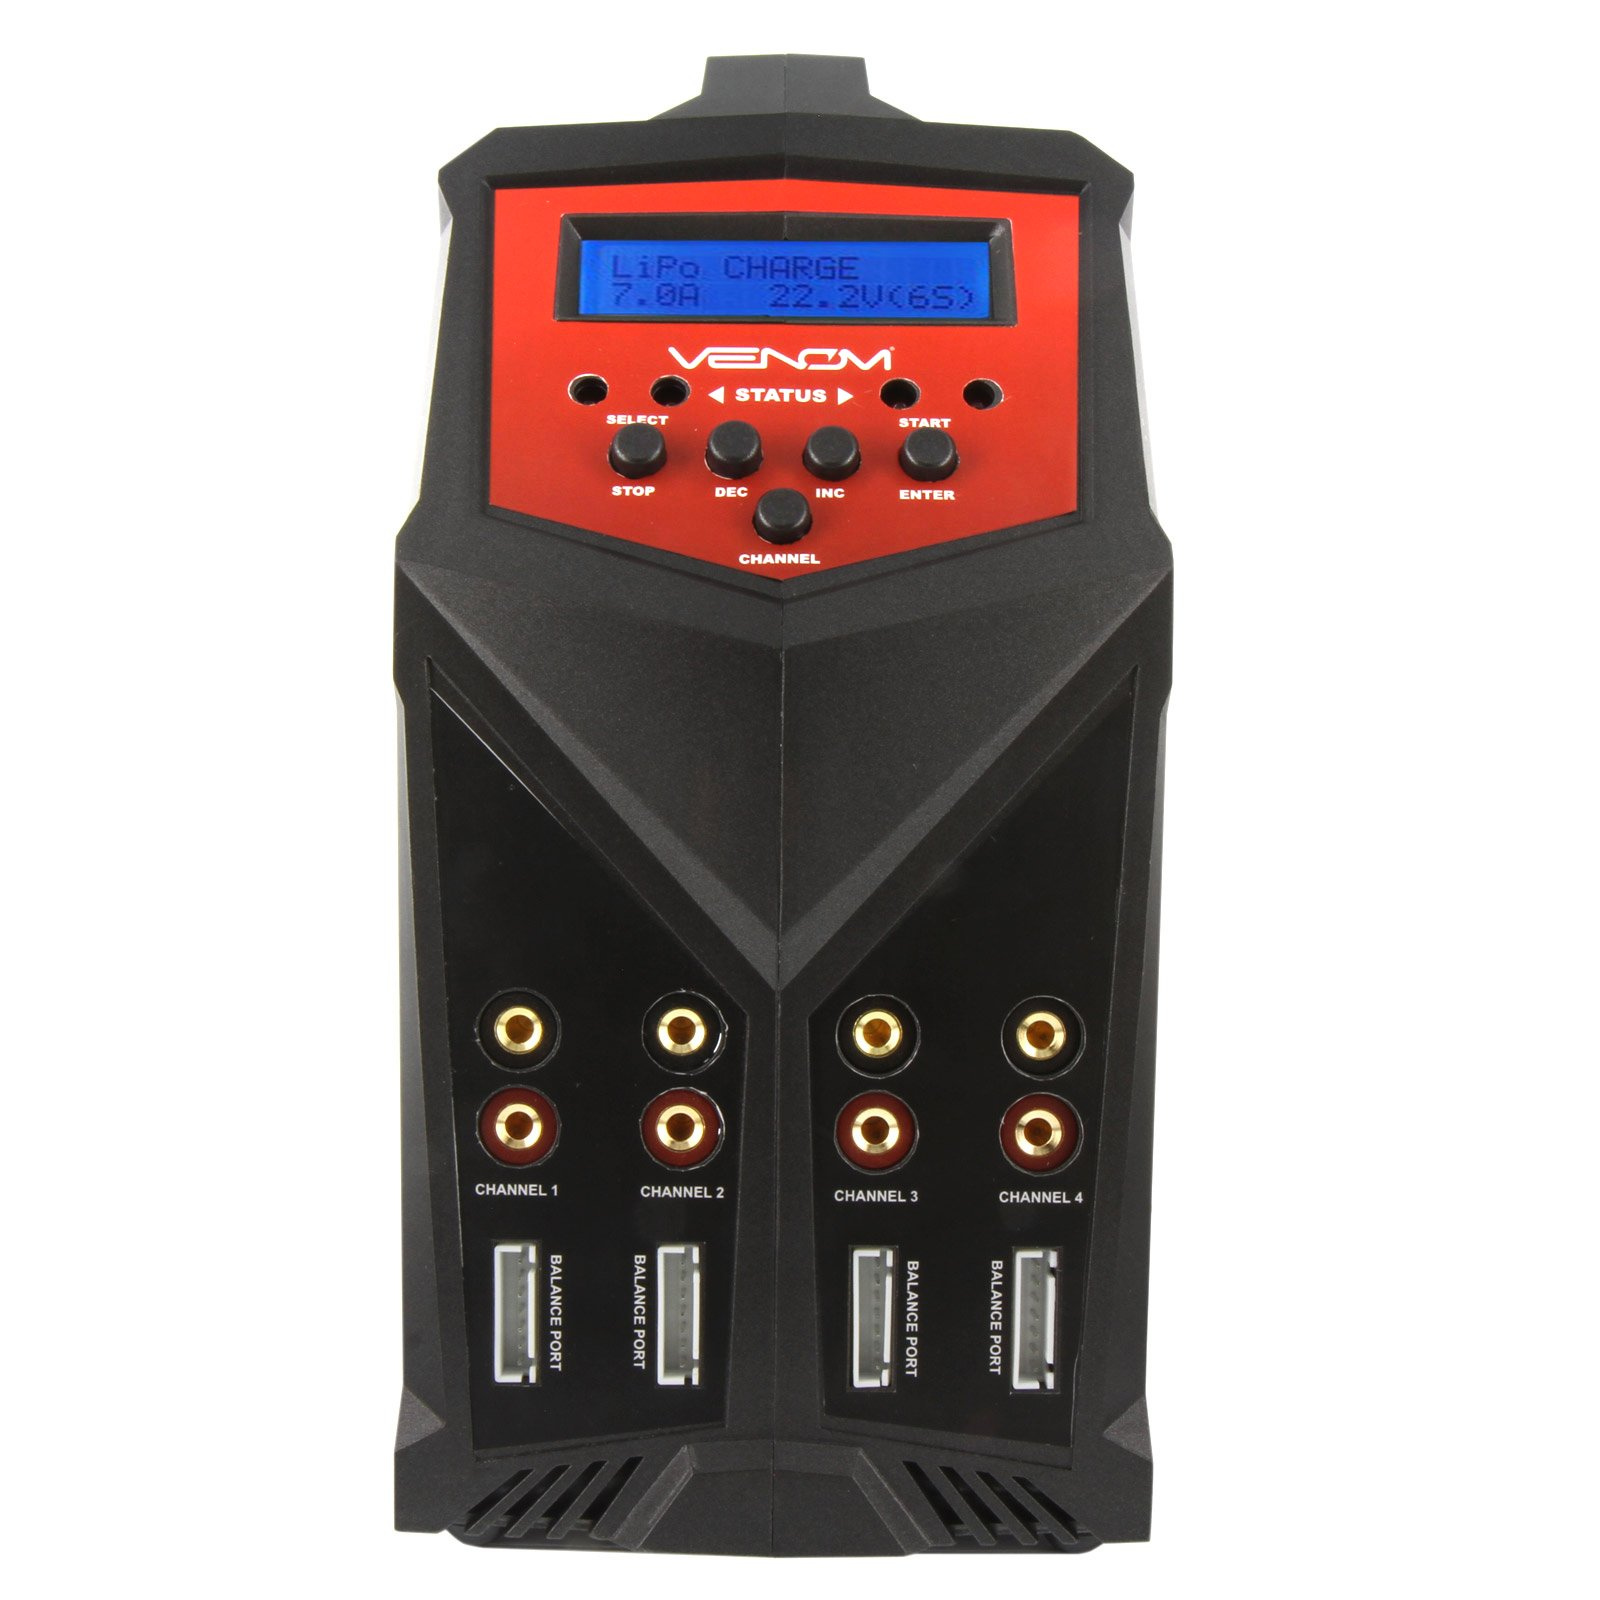 Venom Pro Quad 400 Watt (100W x 4) 7 Amp 4-Port AC/DC Multi-Chemistry LiPo, LiHV, NiMH Battery Balance Charger with Two 5V 2.3A USB Outputs with XT60, Deans, HXT, Tamiya, EC3, JST by Venom RC (Image #3)